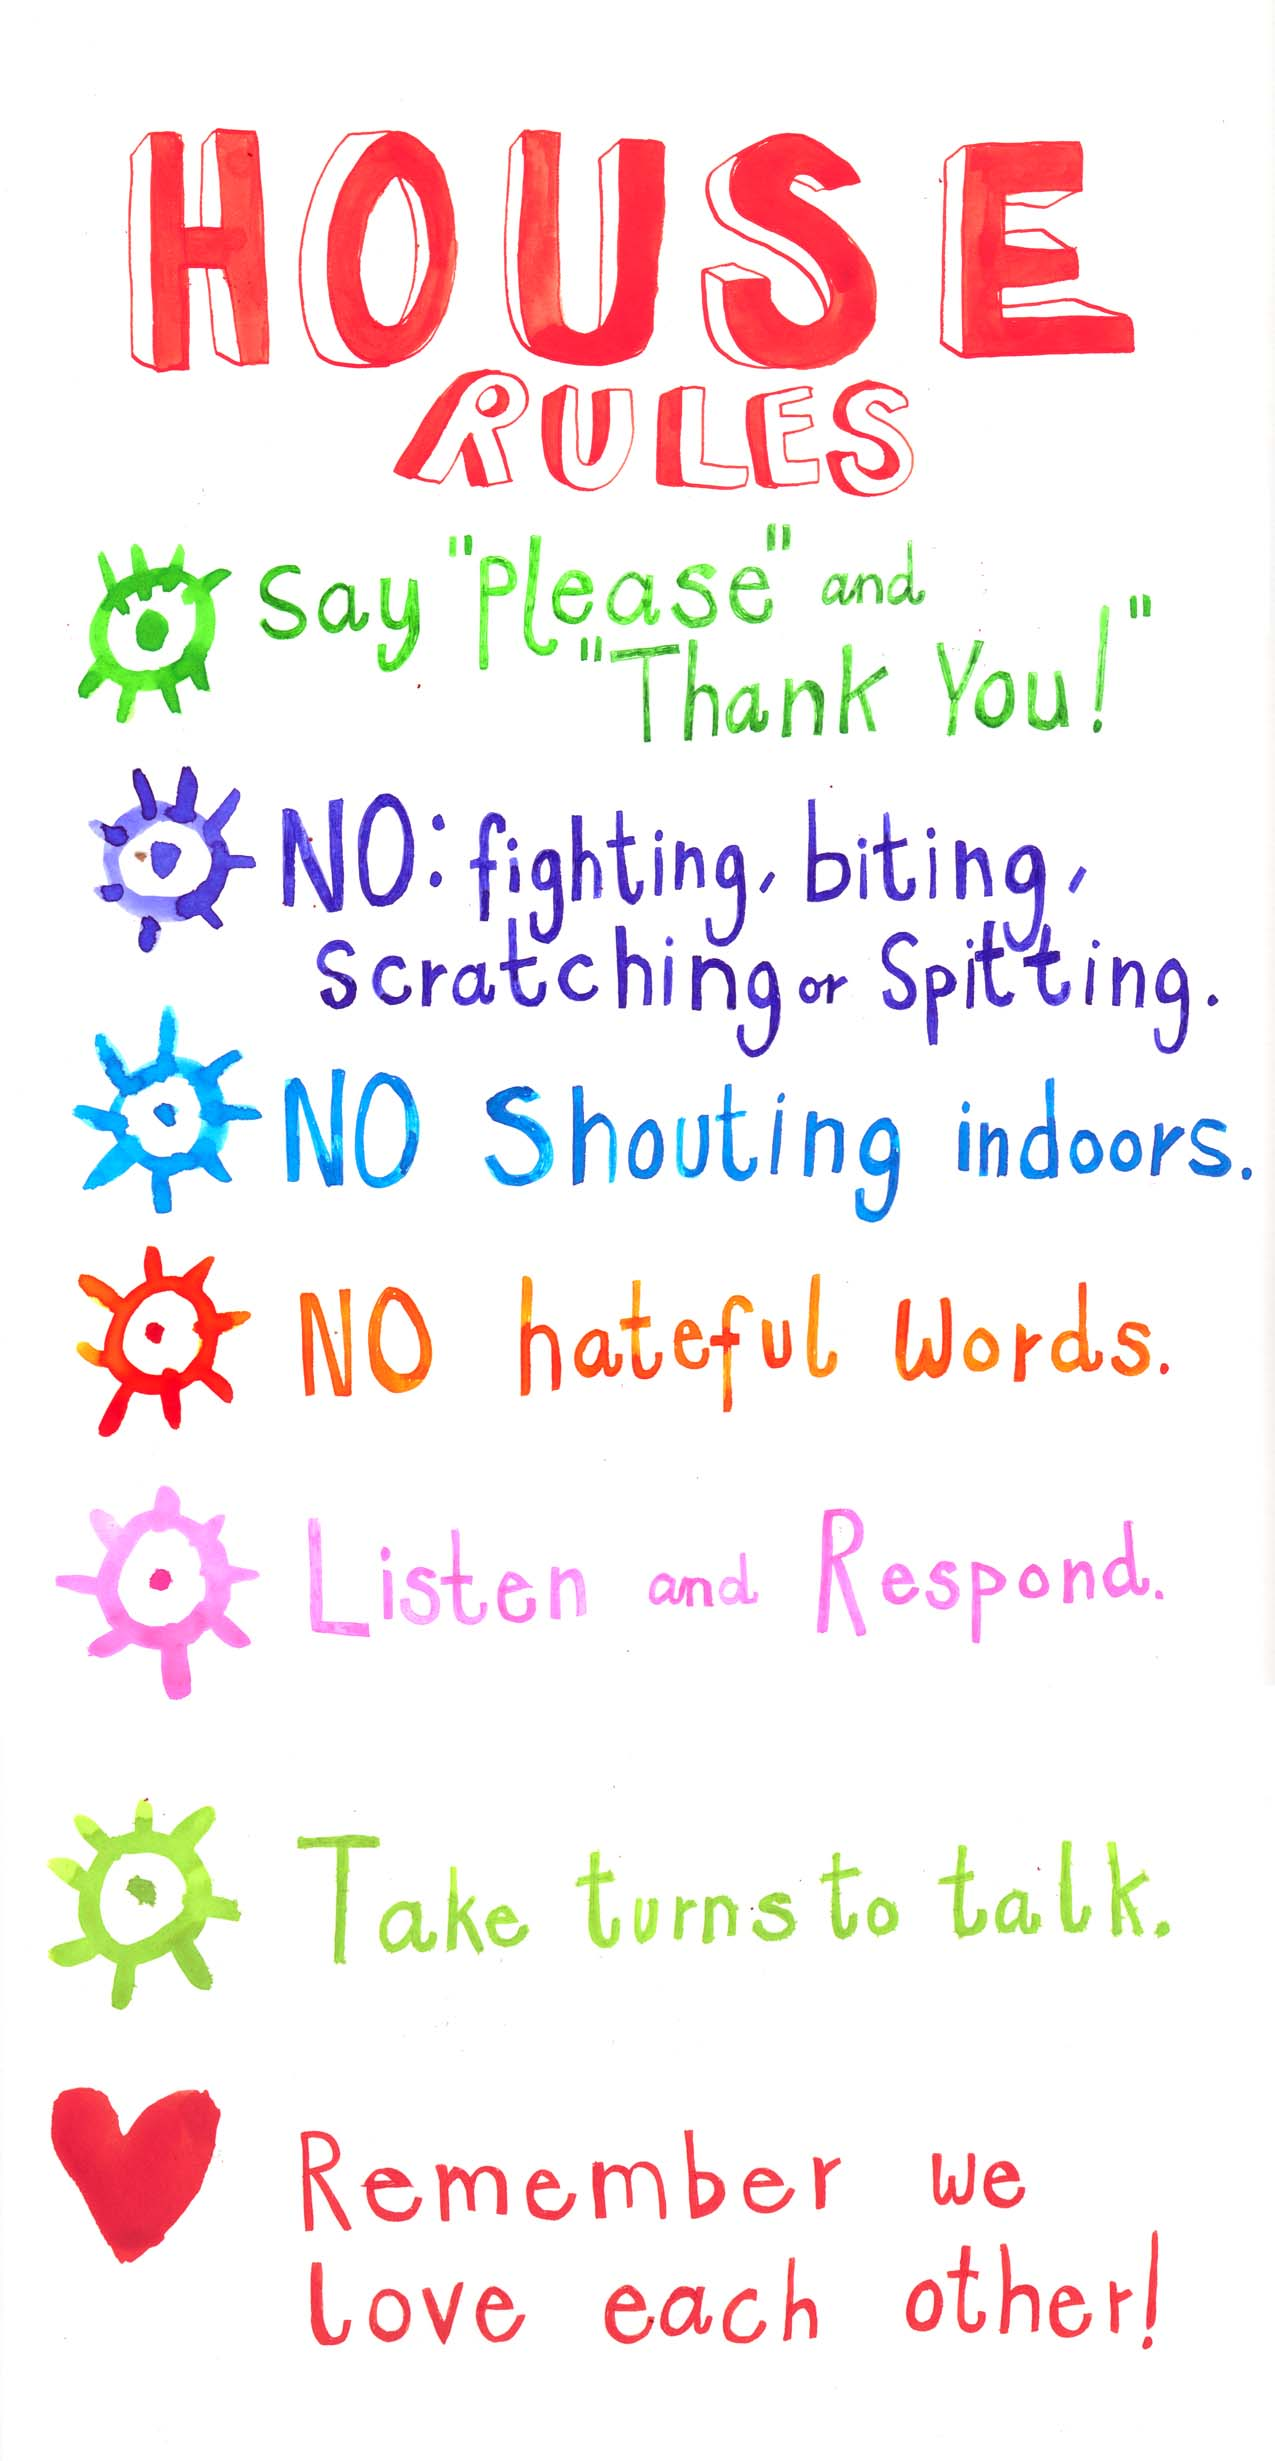 Soft image intended for house rules for kids printable